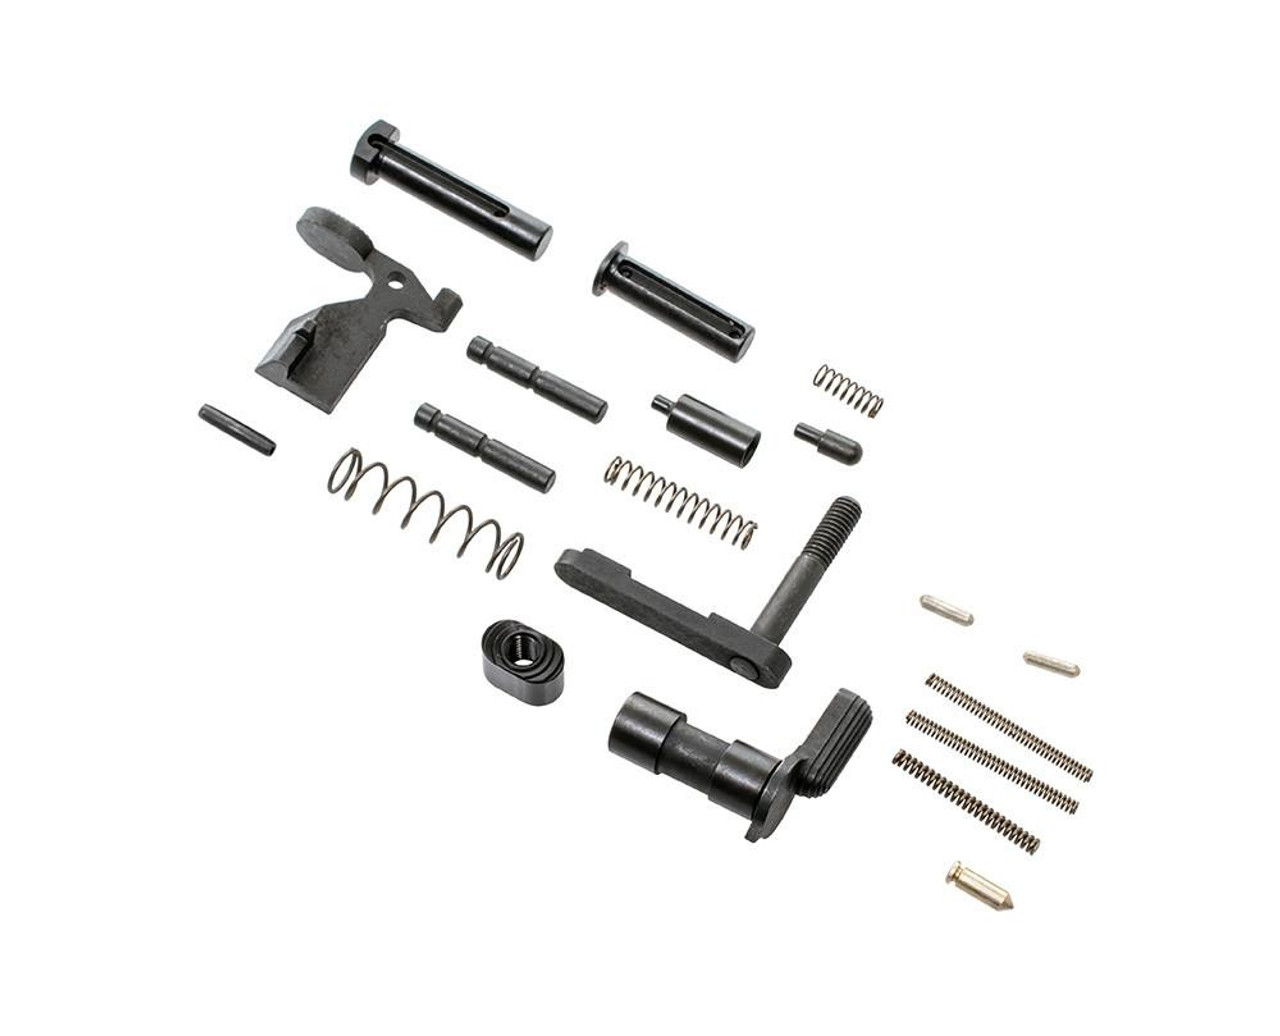 CMMG Gunbuilders Lower Parts Kit (LPK)